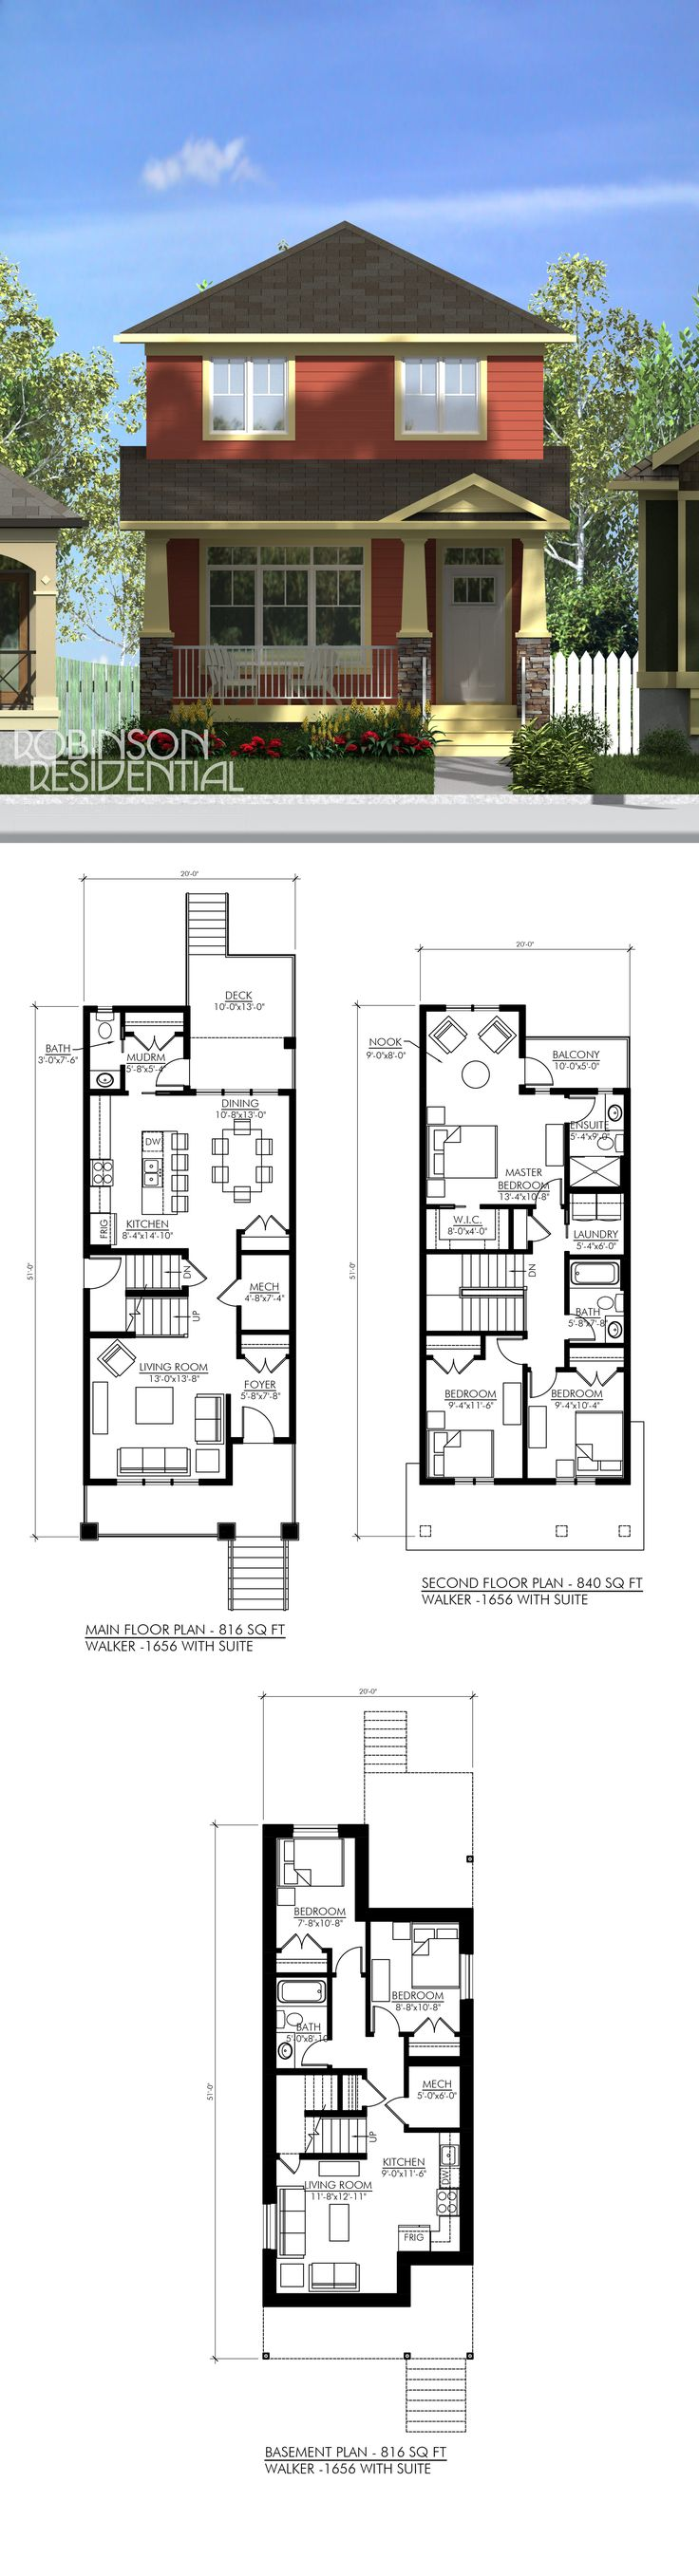 best 25 800 sq ft house ideas on pinterest small home plans best 25 800 sq ft house ideas on pinterest small home plans guest house plans and guest cottage plans